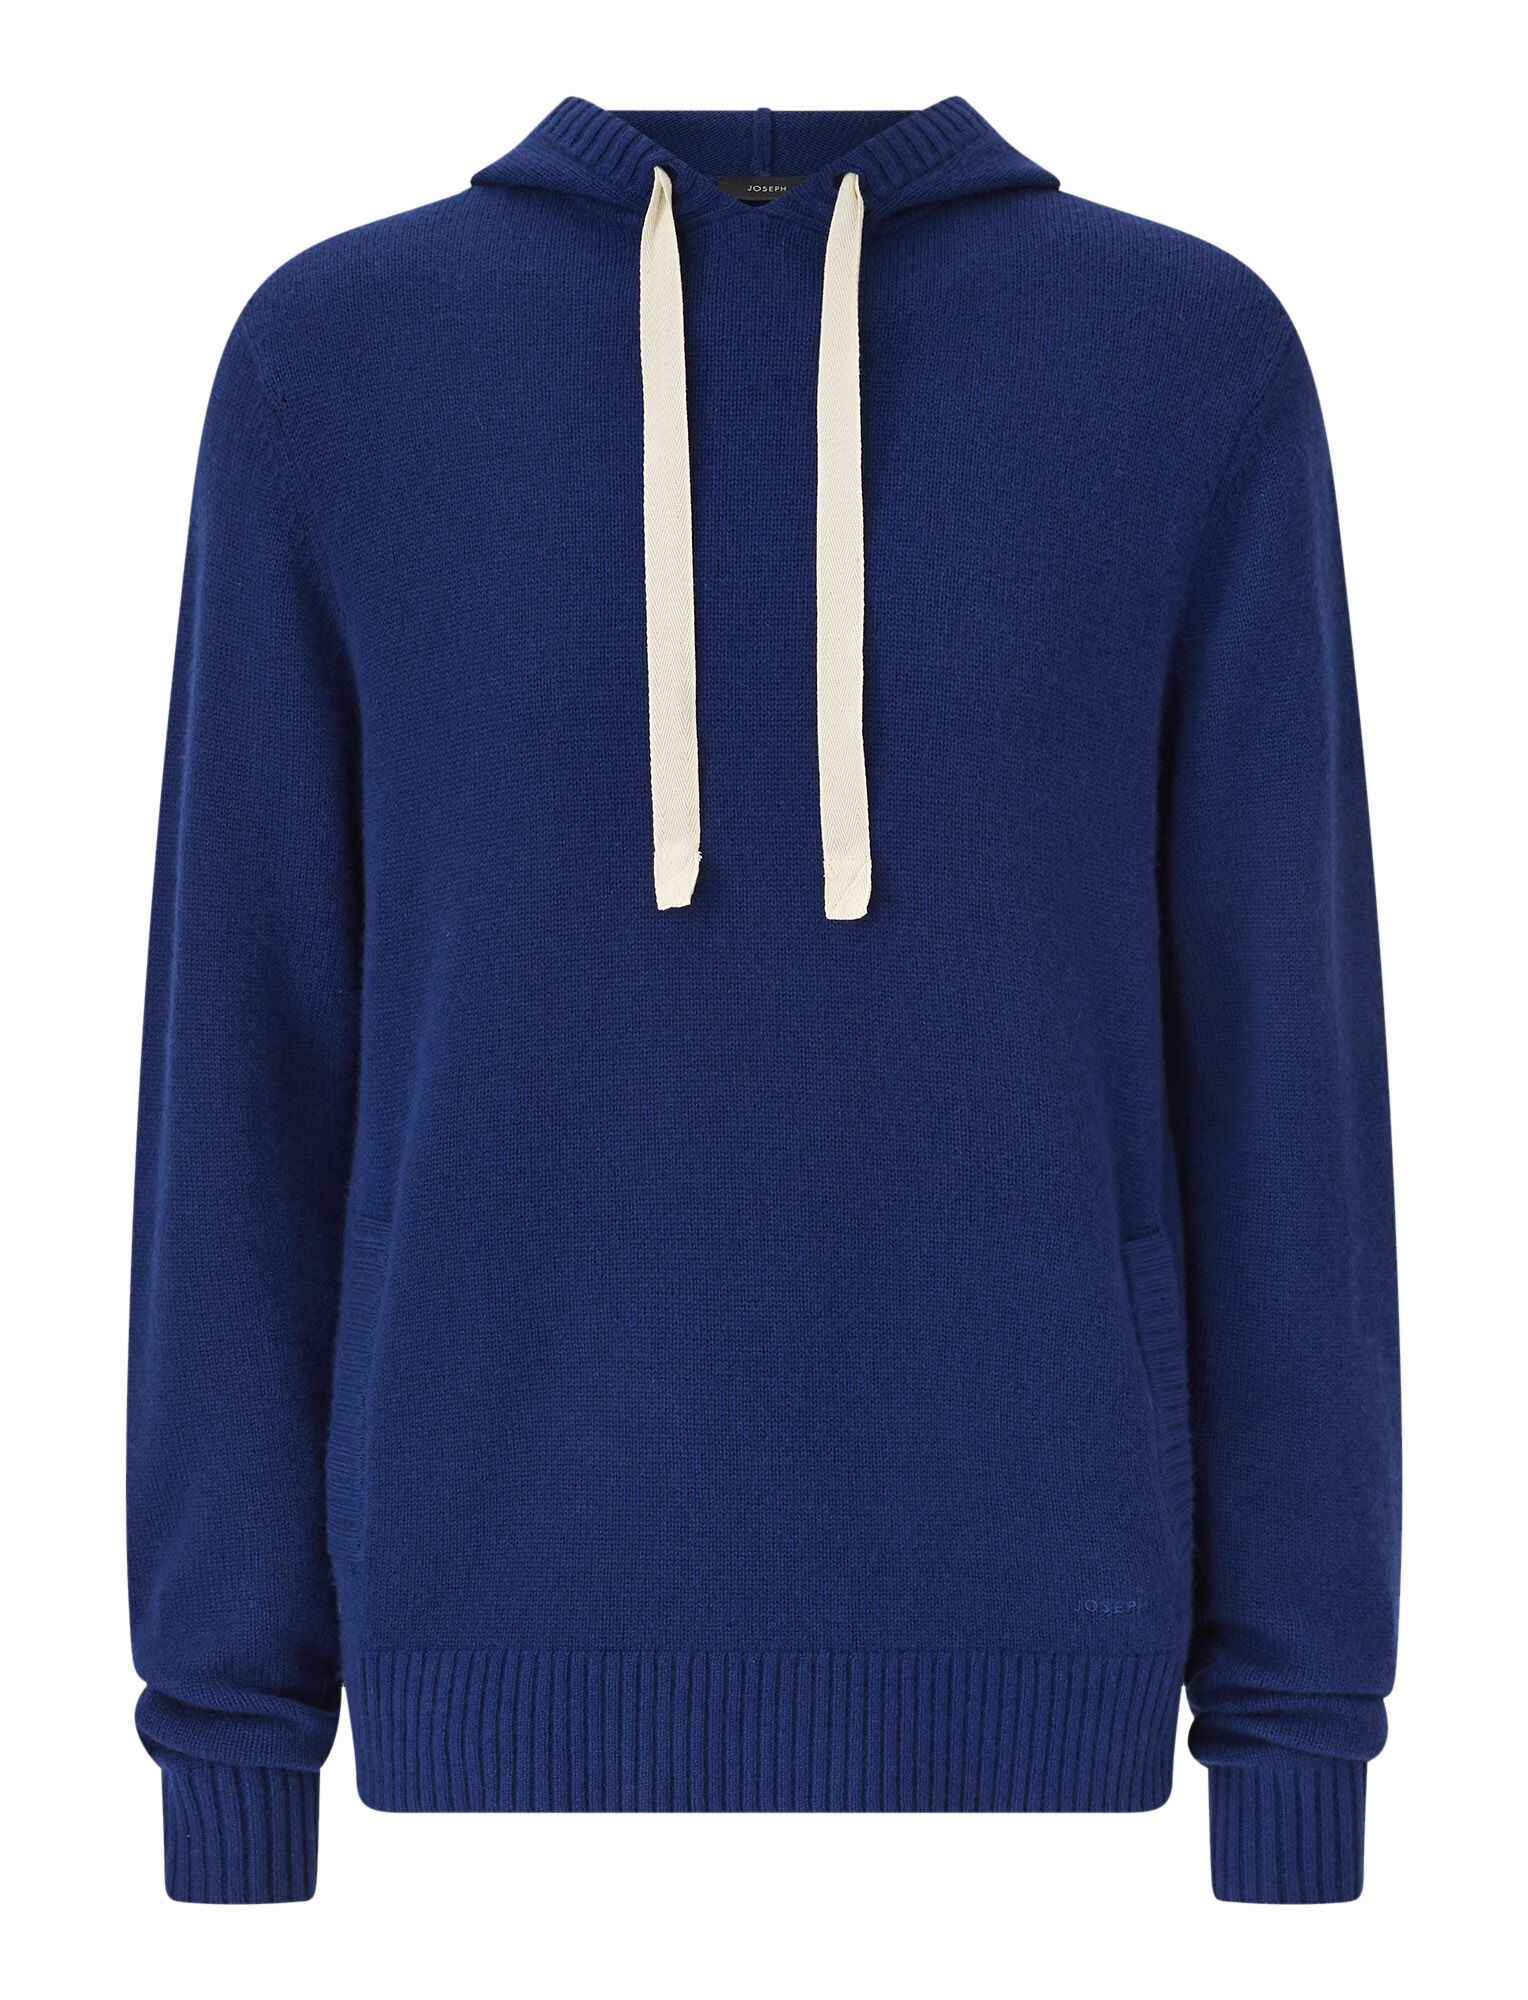 Joseph, Pure Cashmere Knit Hoody, in KLEIN